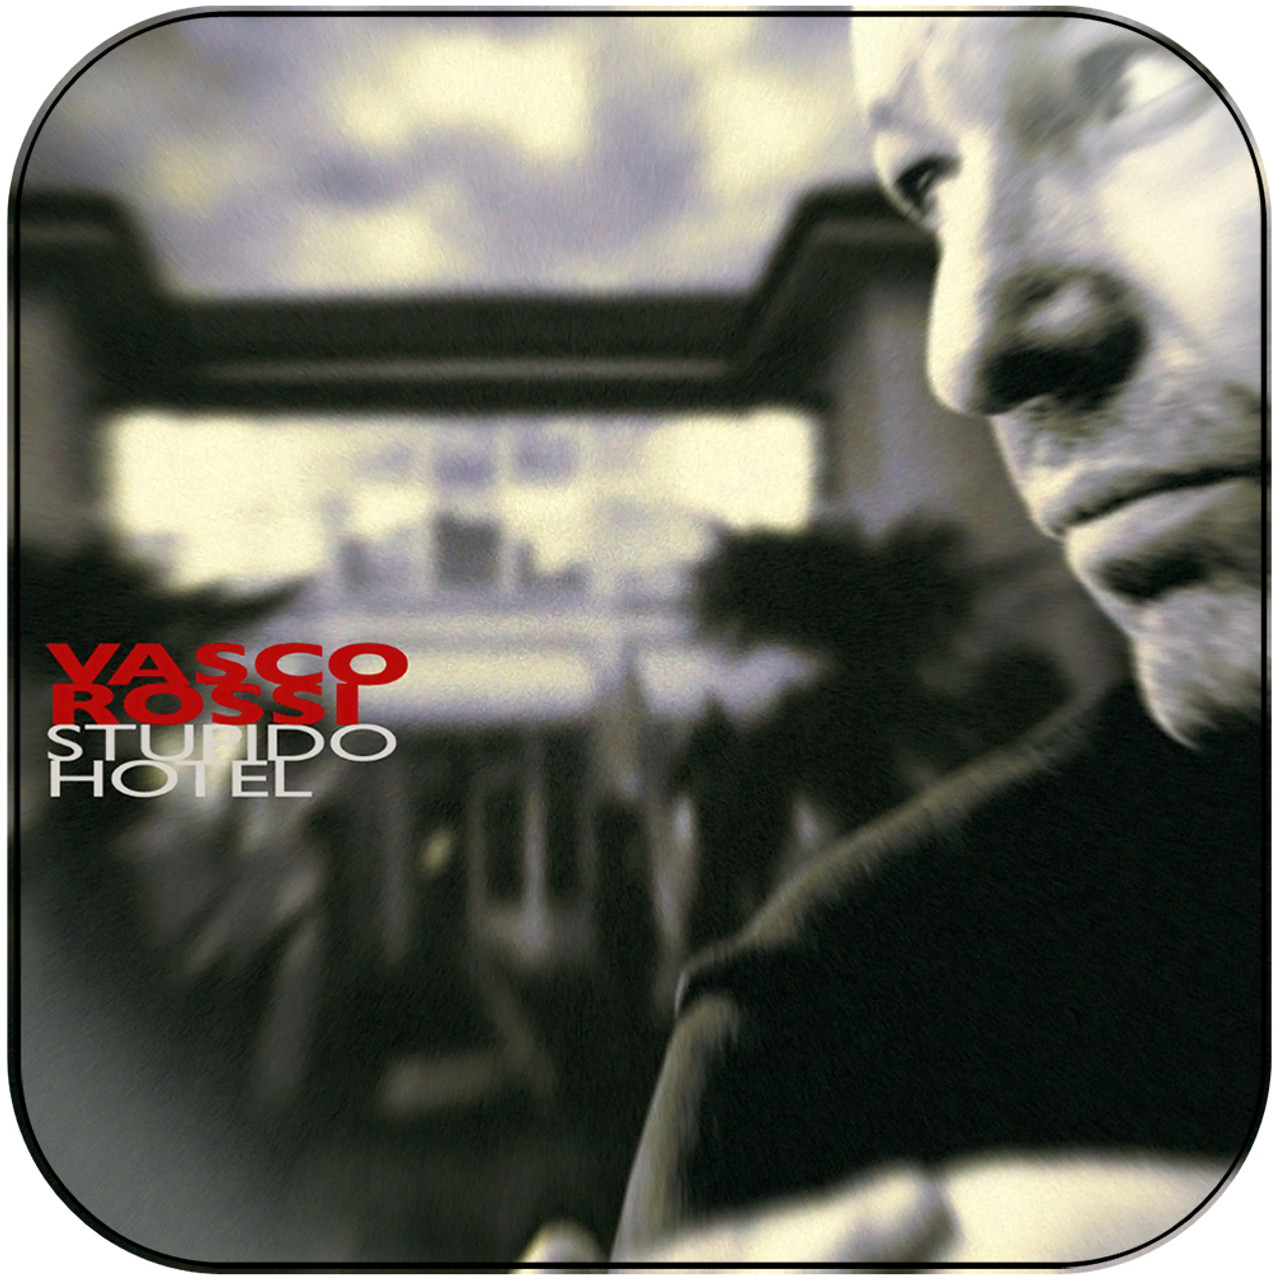 Rewind Vasco Rossi Vasco Rossi Stupido Hotel Album Cover Sticker Album Cover Sticker